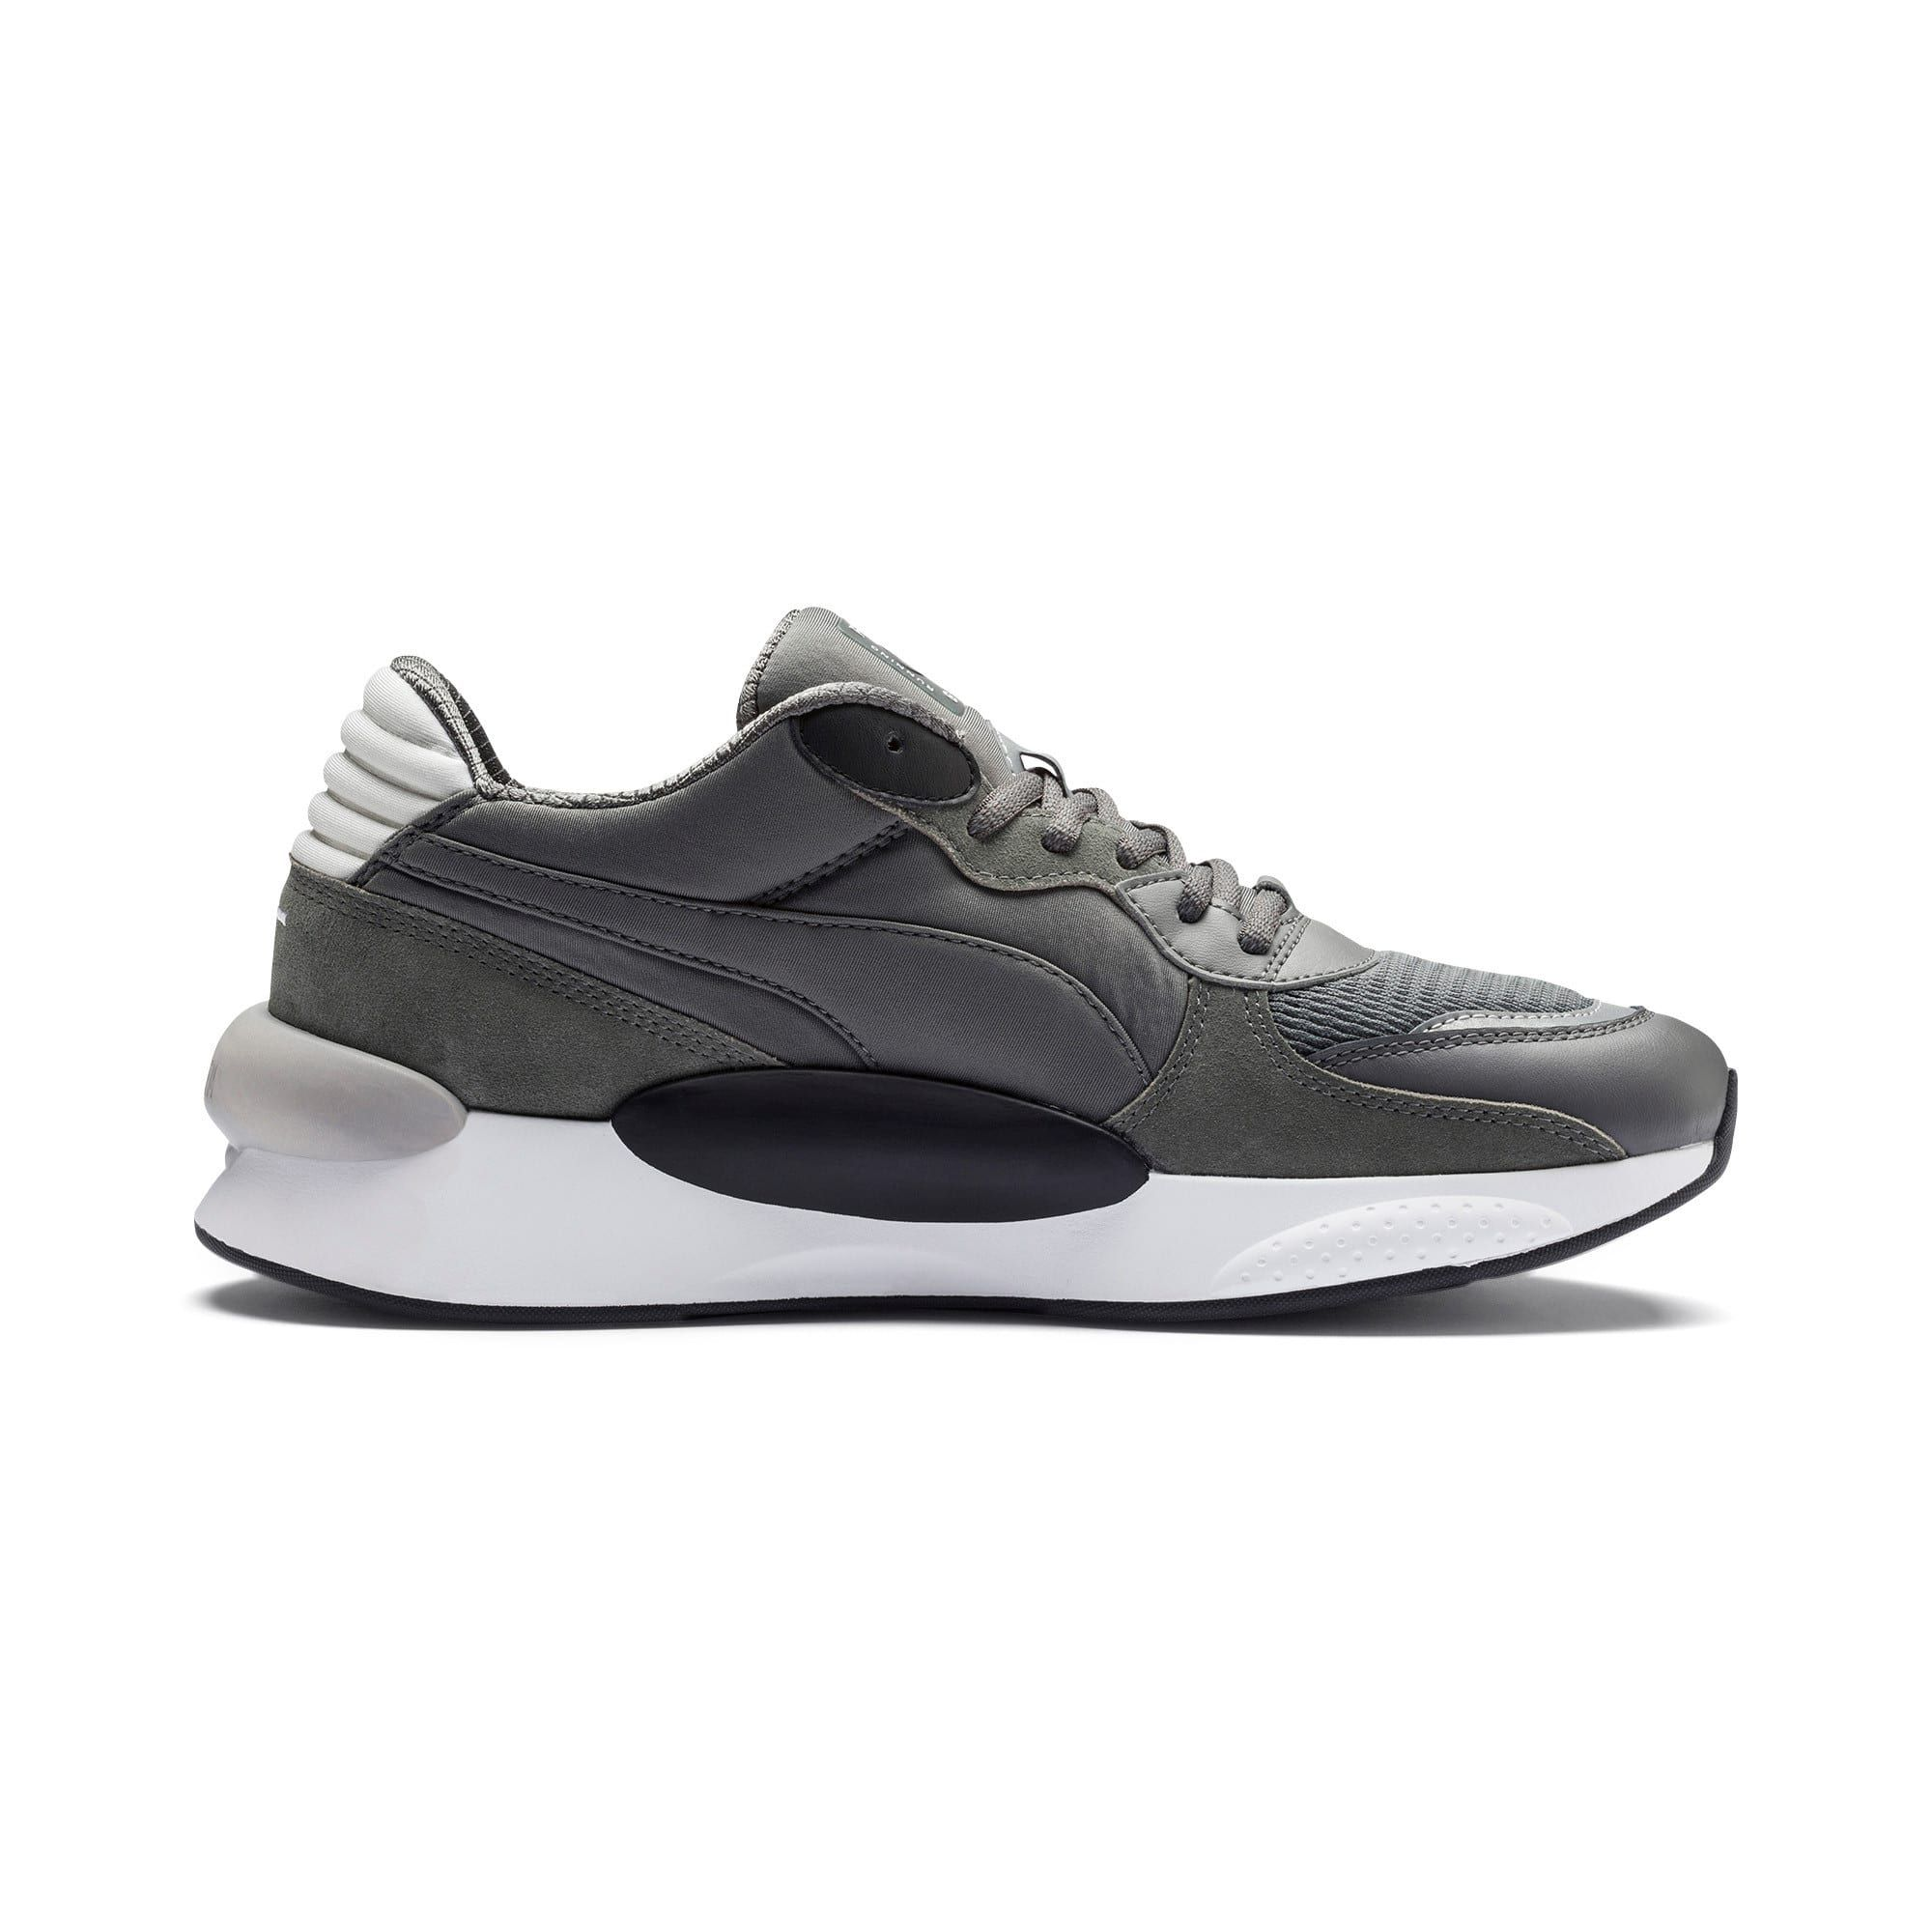 PUMA RS 9.8 Gravity Trainers in Grey size 9.5 | Leather ...